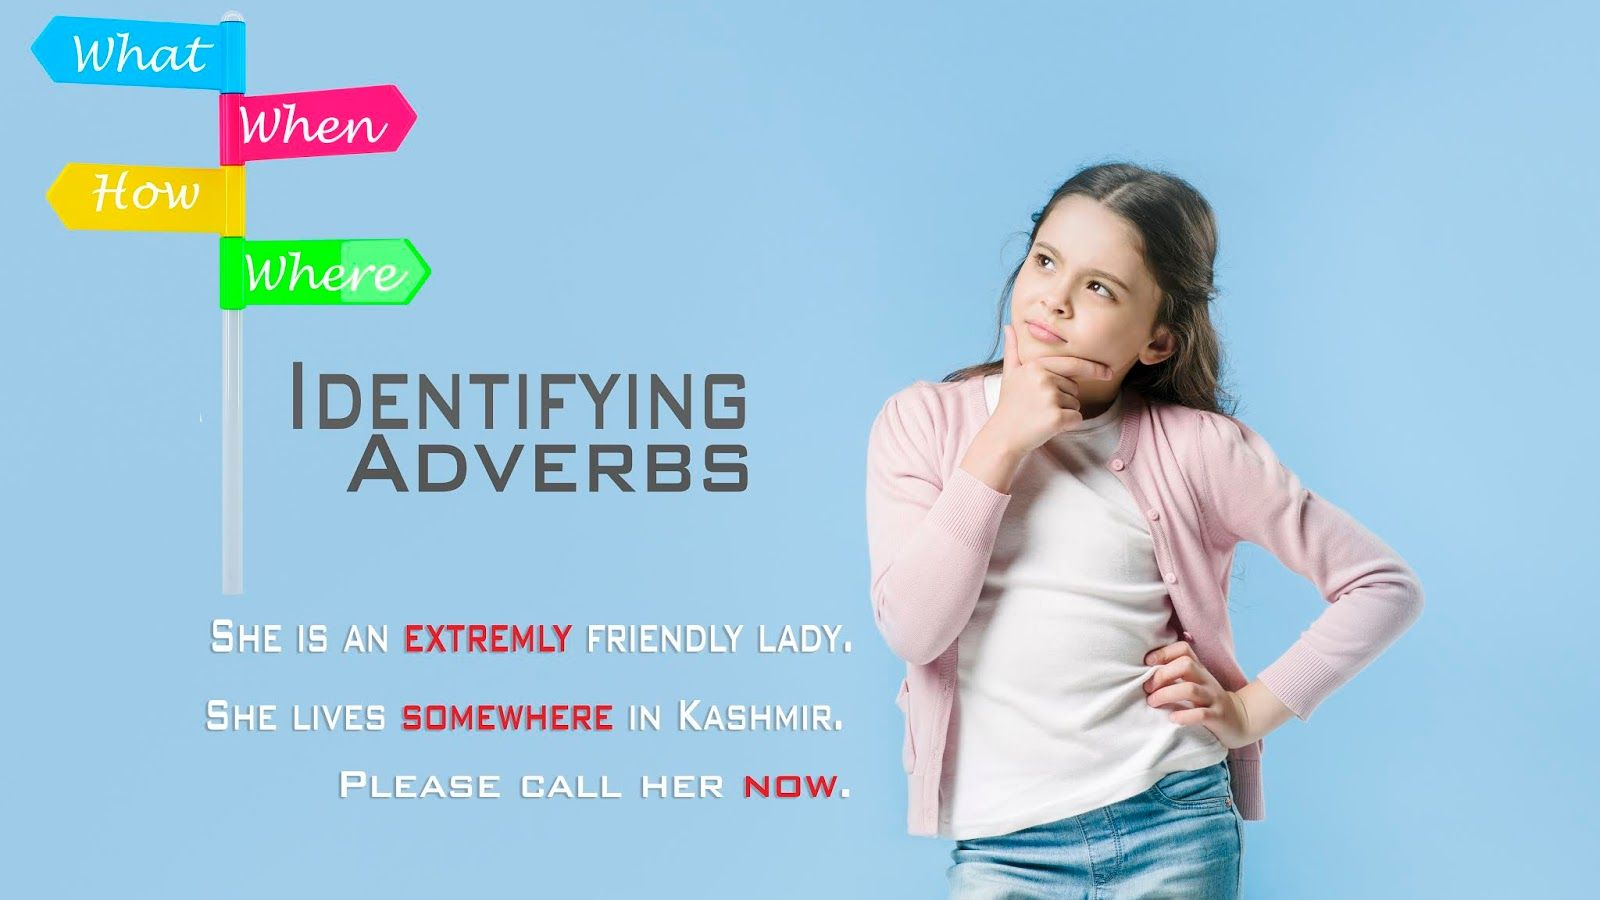 How To Identify Adverbs In A Sentence